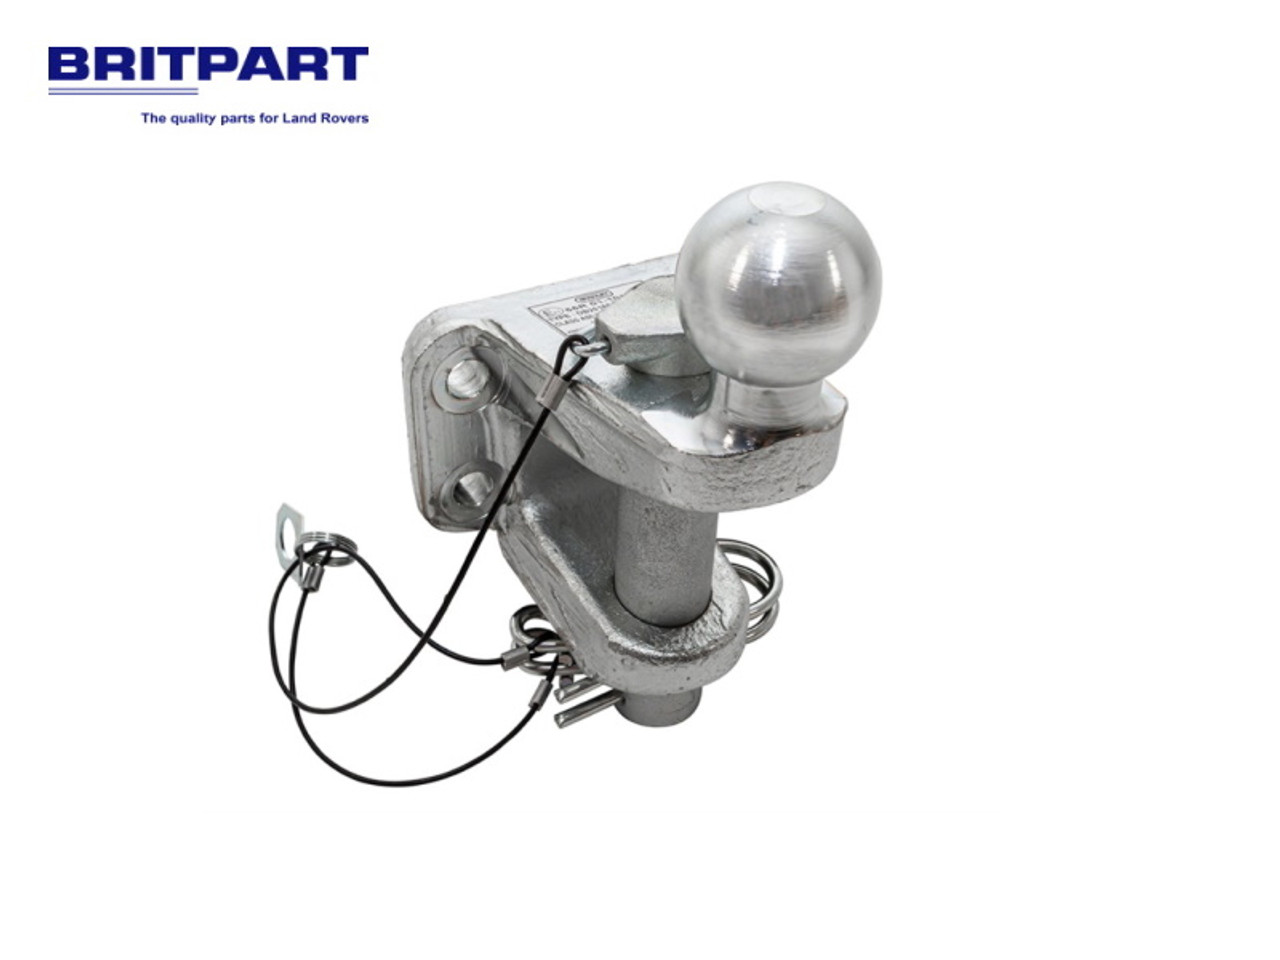 Britpart Dixon Bate Heavy Duty 4 Bolt Mounted Ball, Jaw And Pin - 201691